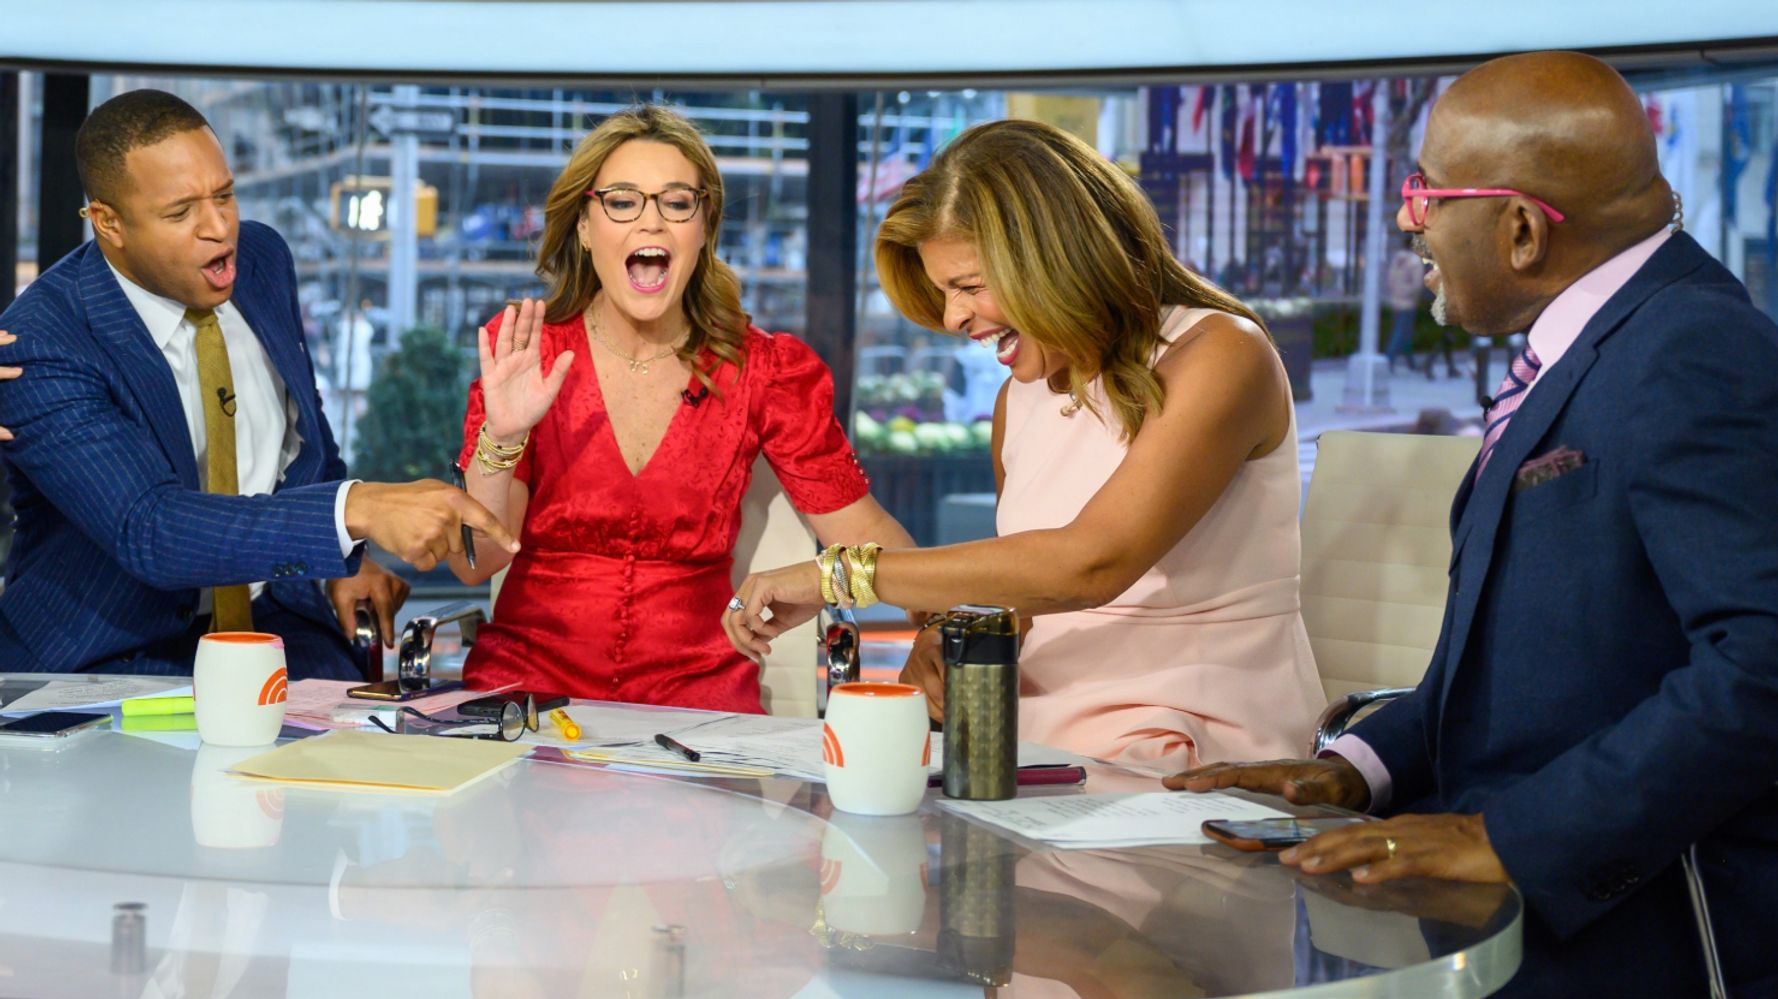 Westlake Legal Group 5ddc0484210000ab9834dfc4 Hoda Kotb Shocks 'Today' Colleagues By Announcing She's Engaged On Air